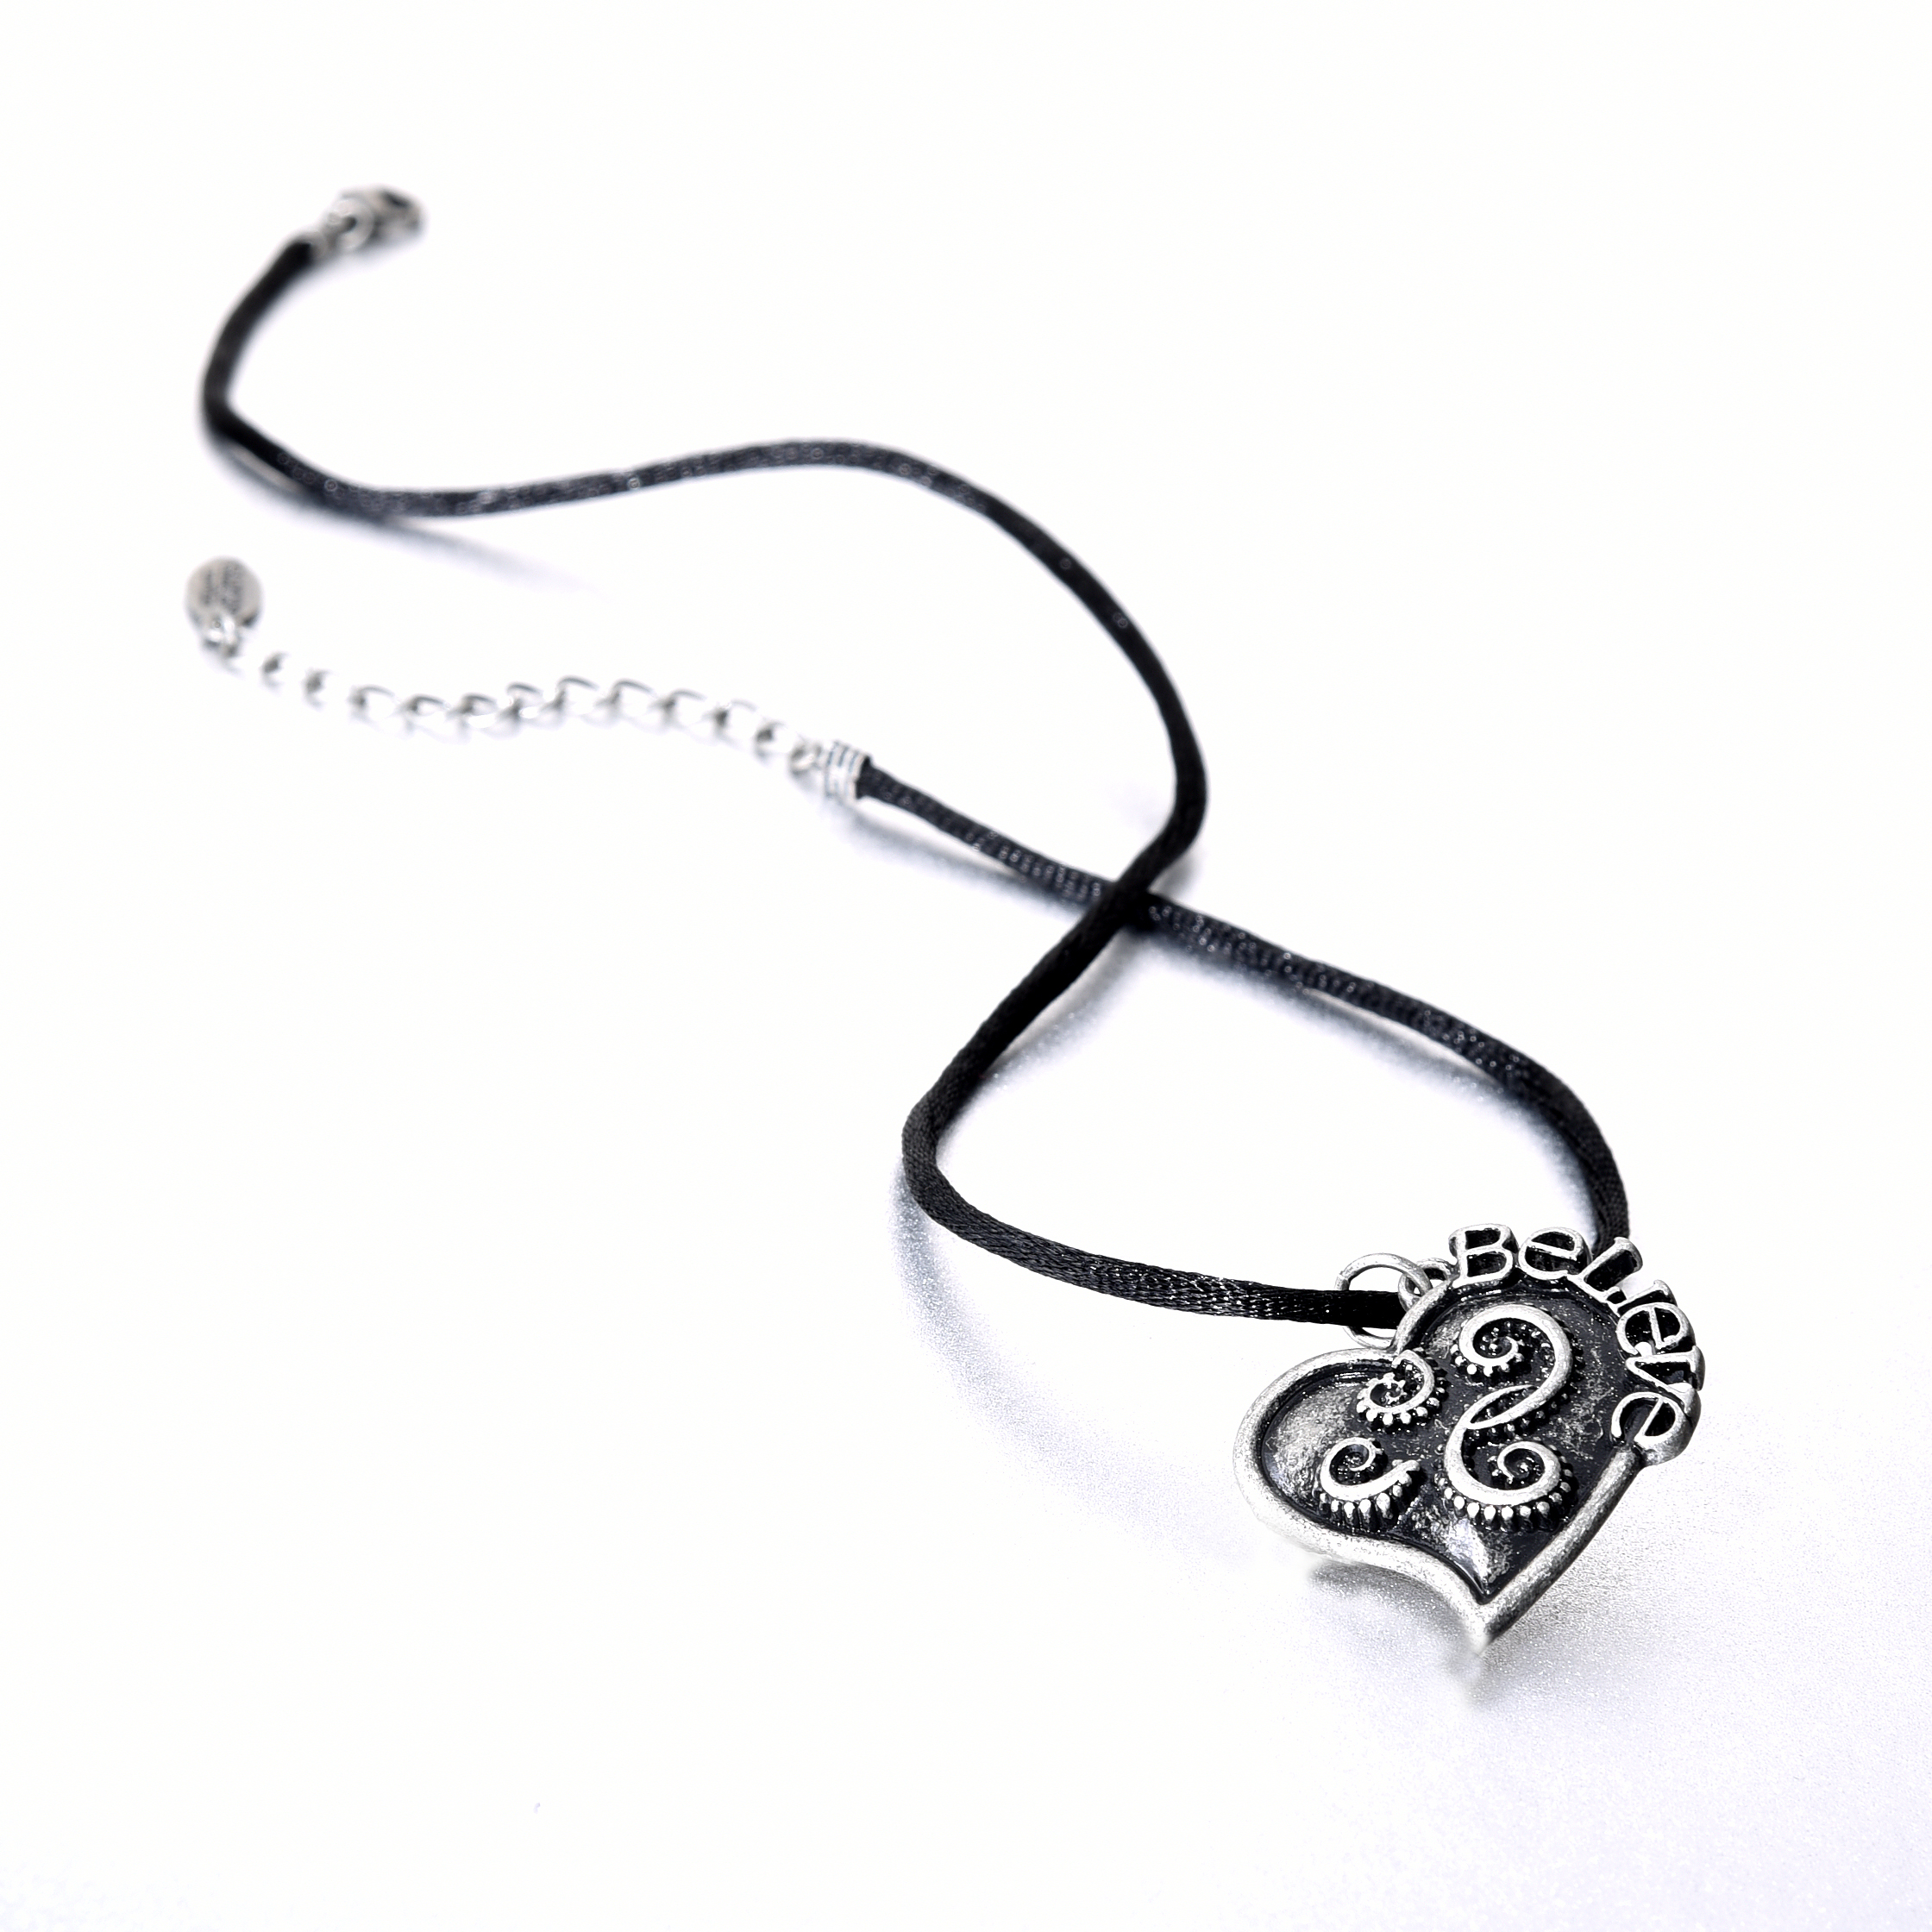 Criss Angel the Jewelry Black Satin Silver Tone Follow Your Heart Necklace-0